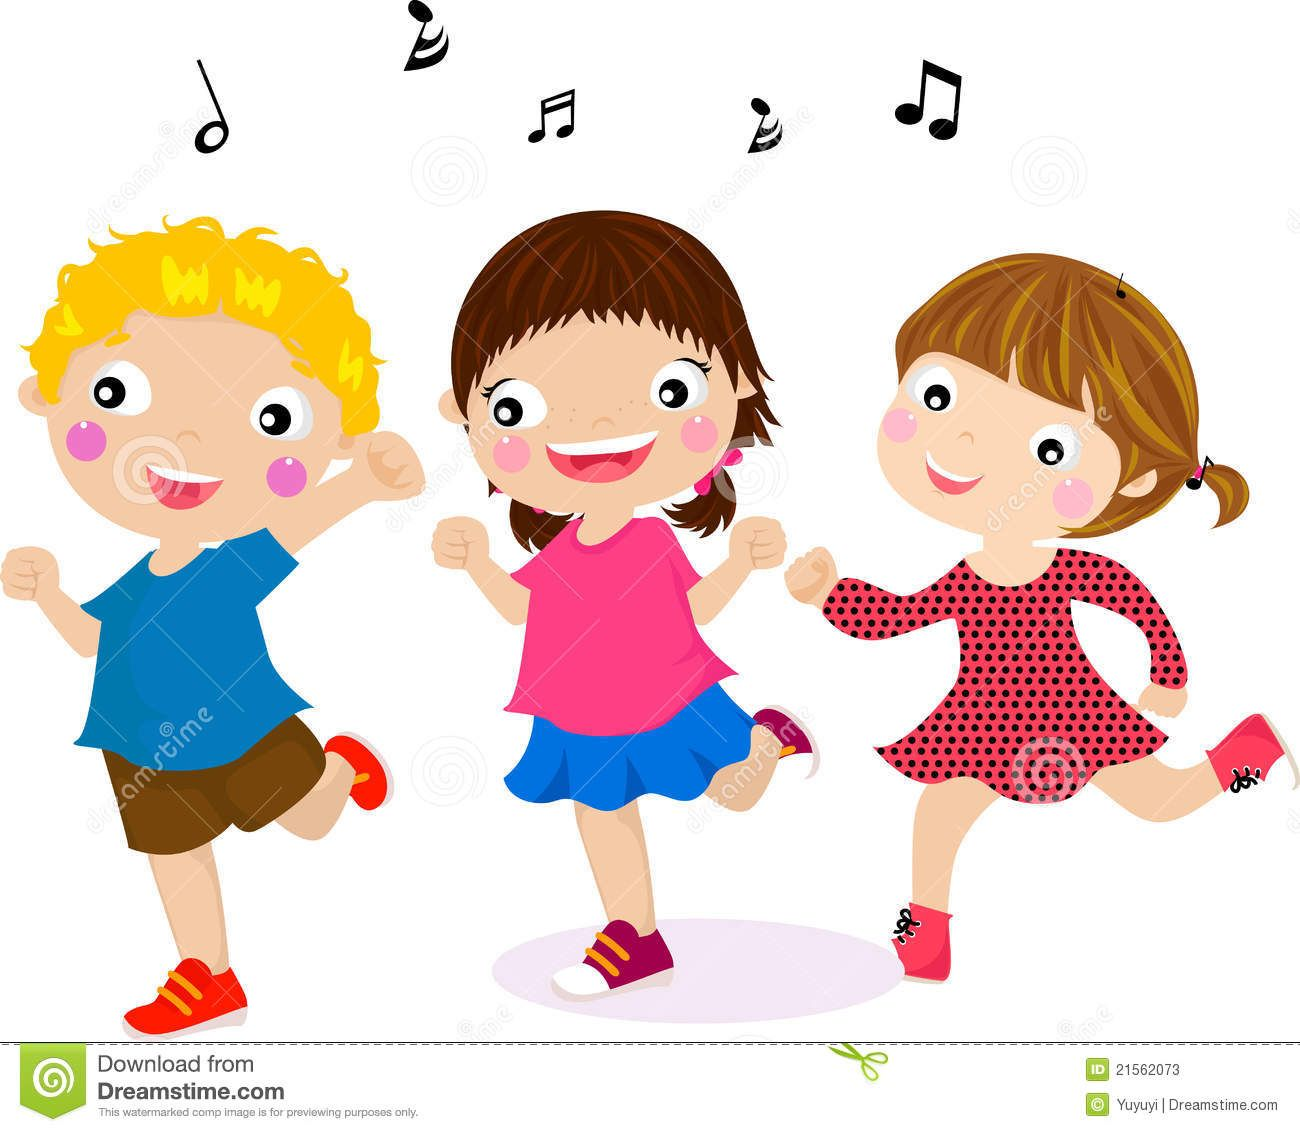 pics for u003e children singing and dancing clip art classroom ideas rh pinterest com Dancing Girl Clip Art People Dancing Clip Art